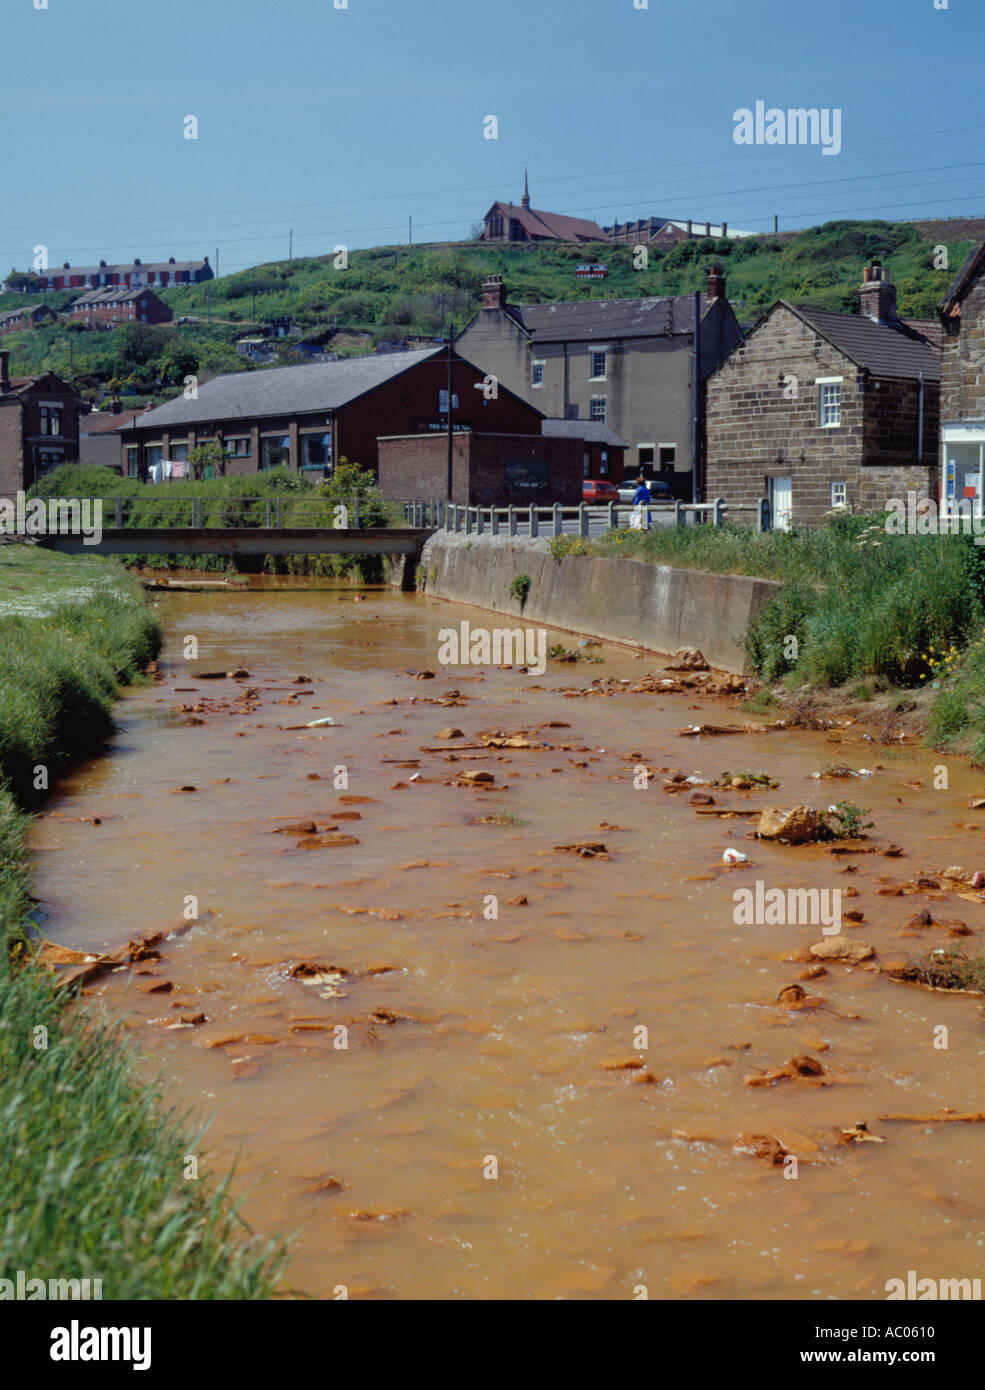 River pollution from iron oxide polluted ground water seeping from old ironstone mine, Skinningrove, Cleveland, England, UK. - Stock Image